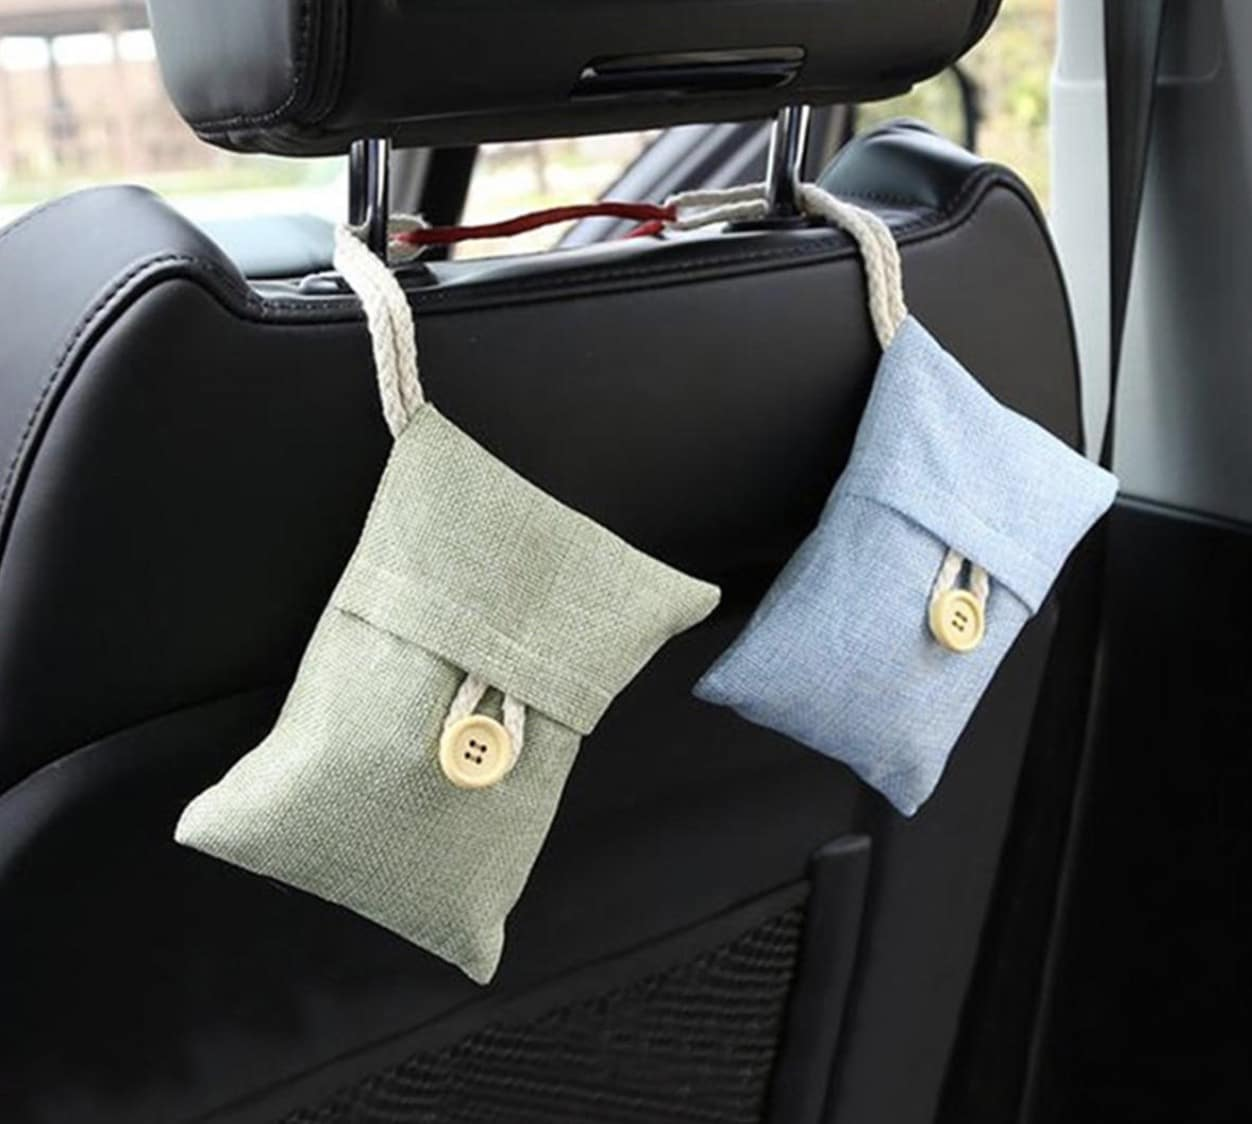 How to Use Charcoal Purification Bags?